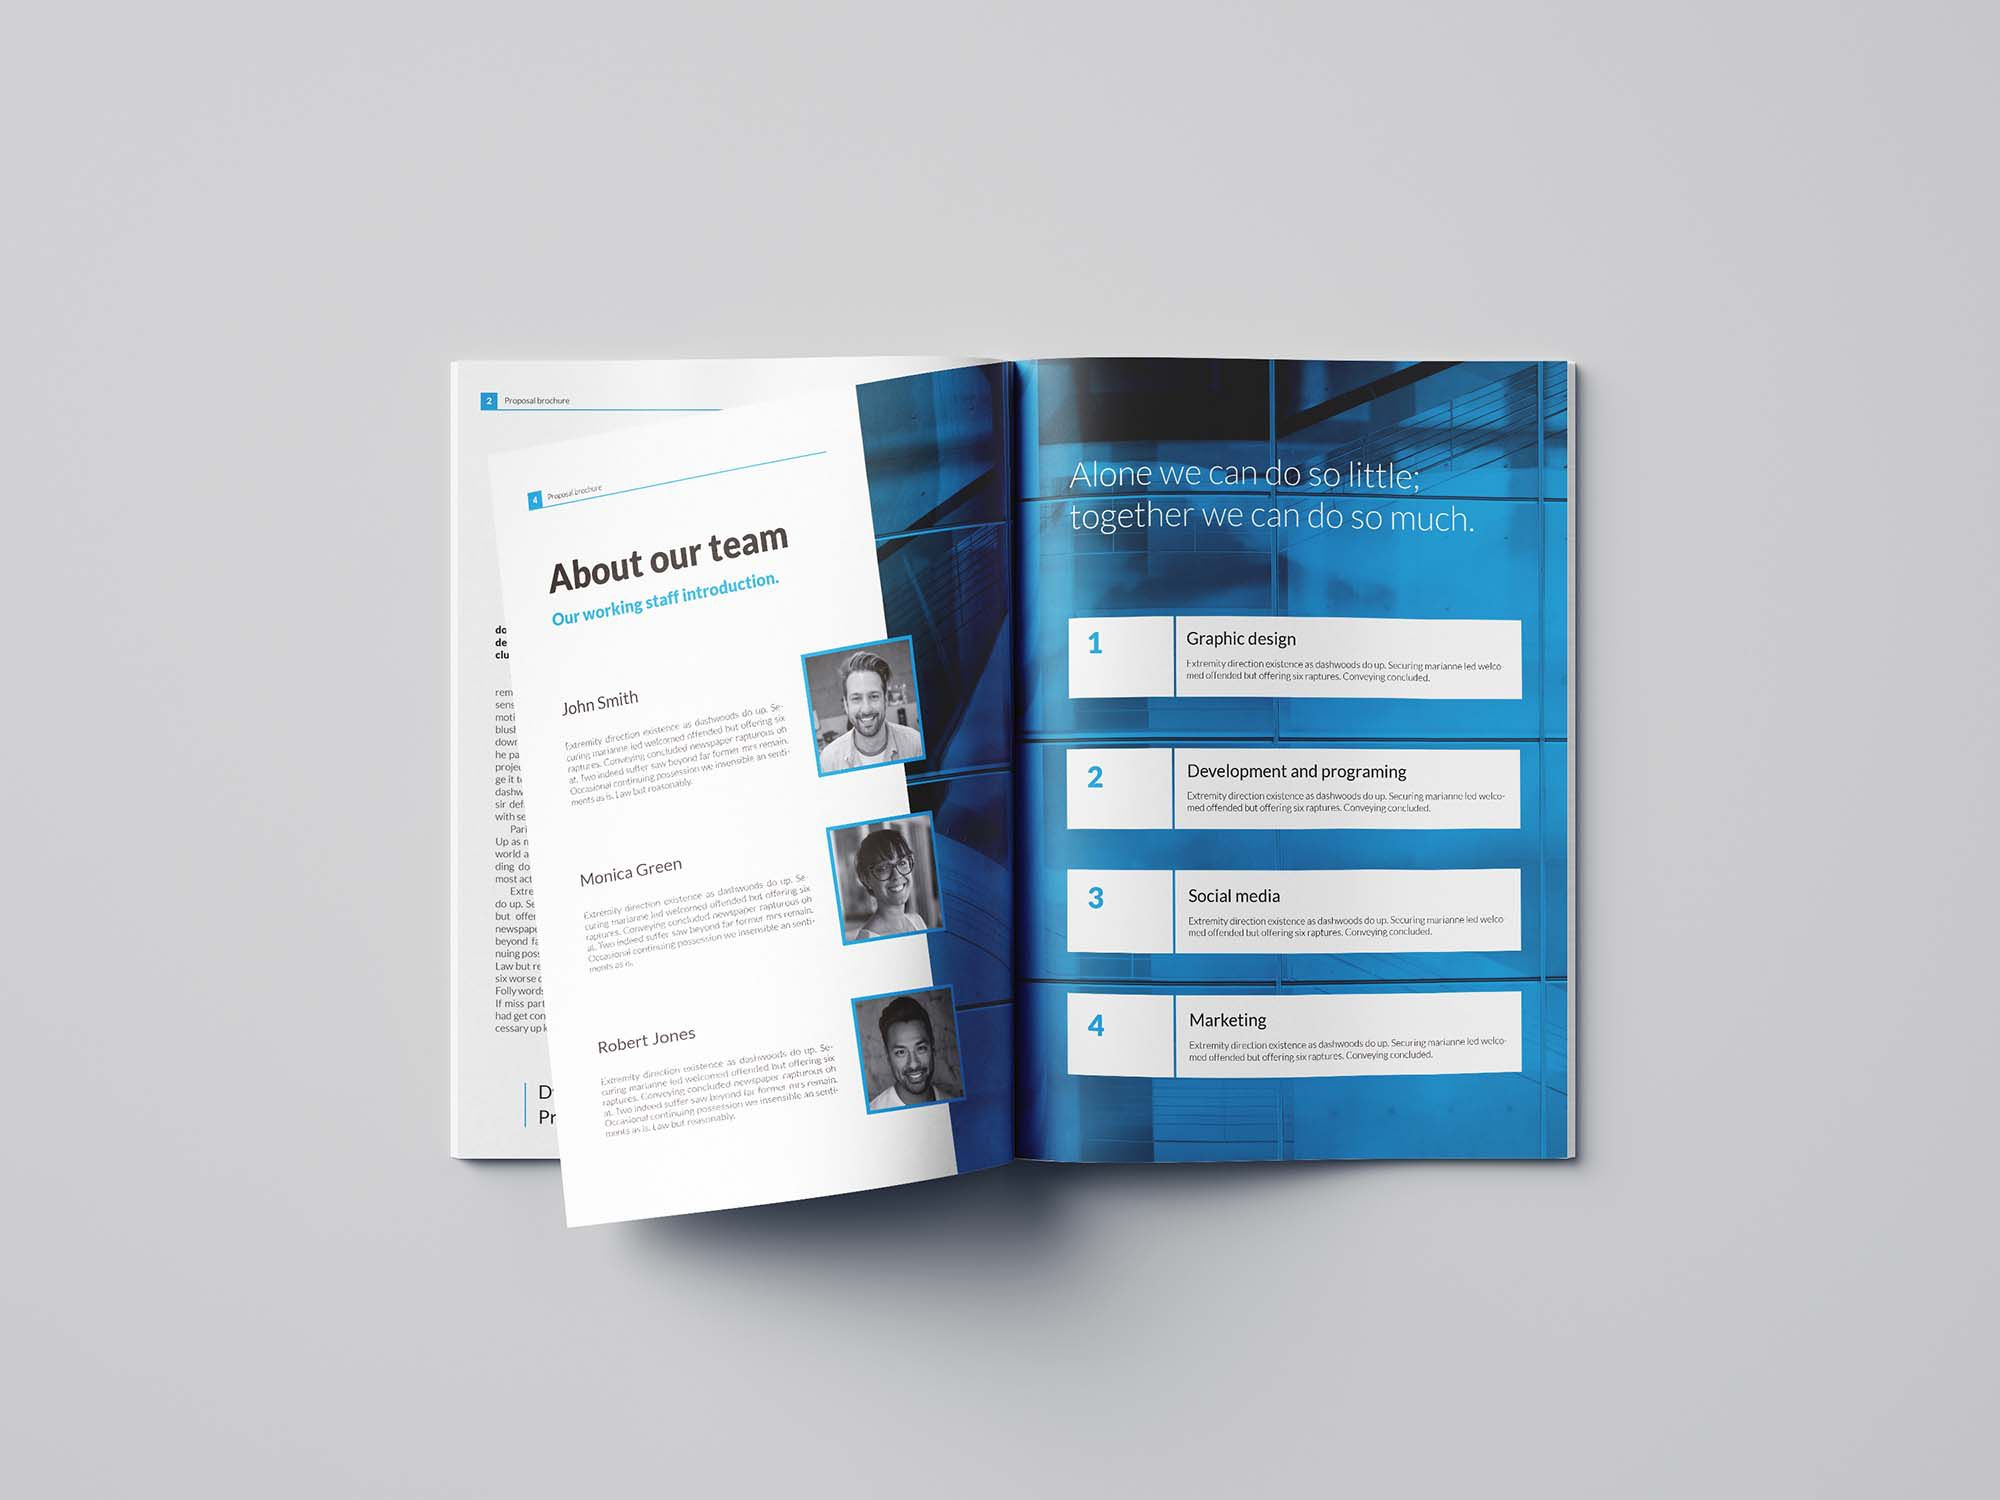 004 Surprising Free Busines Proposal Template Indesign High Resolution Full